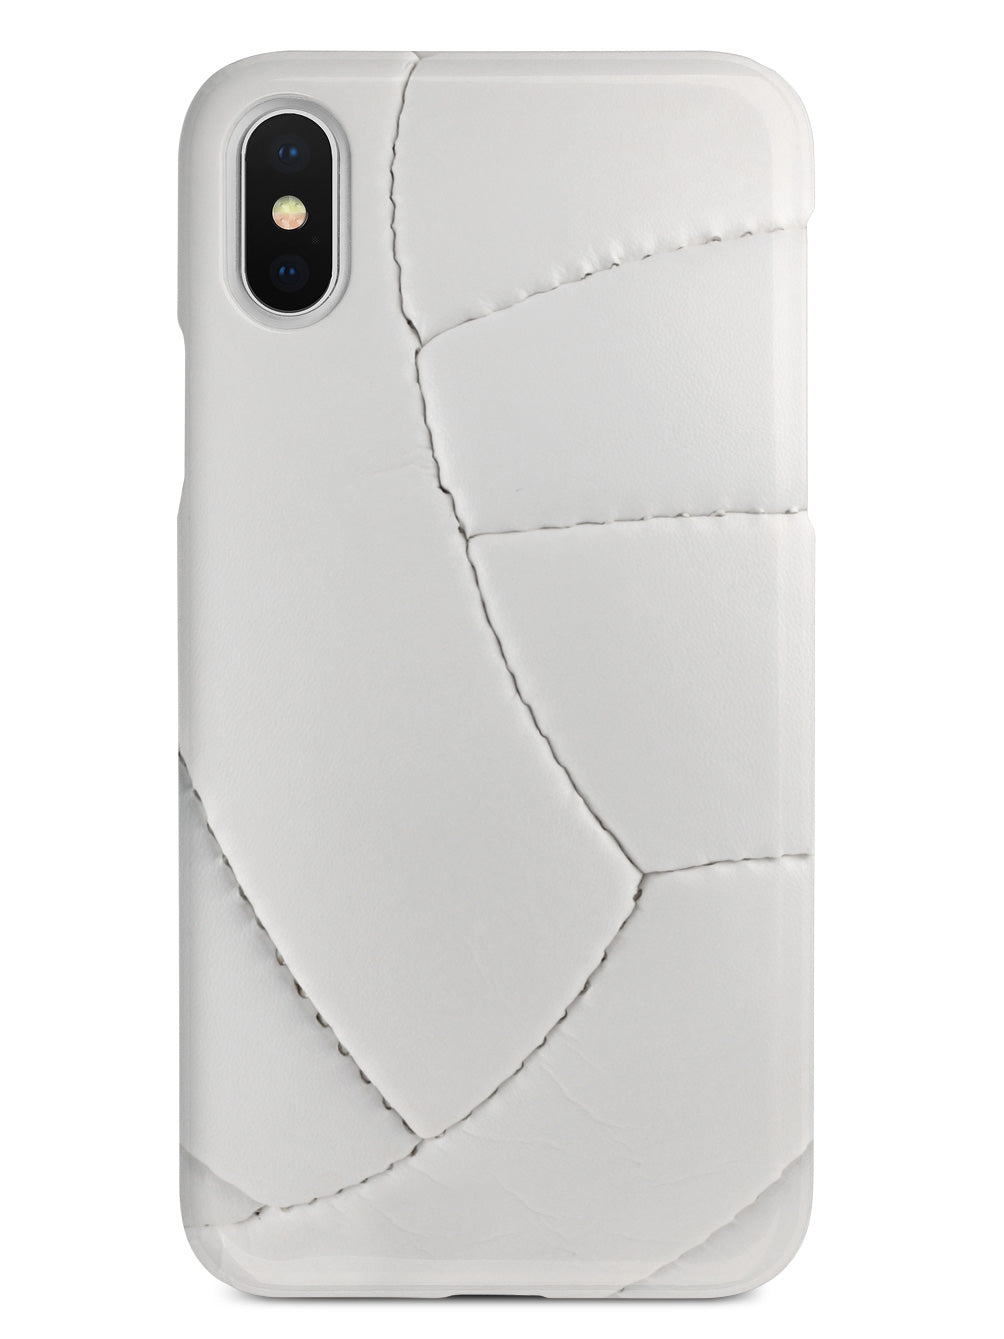 Textured Volleyball Ball Case